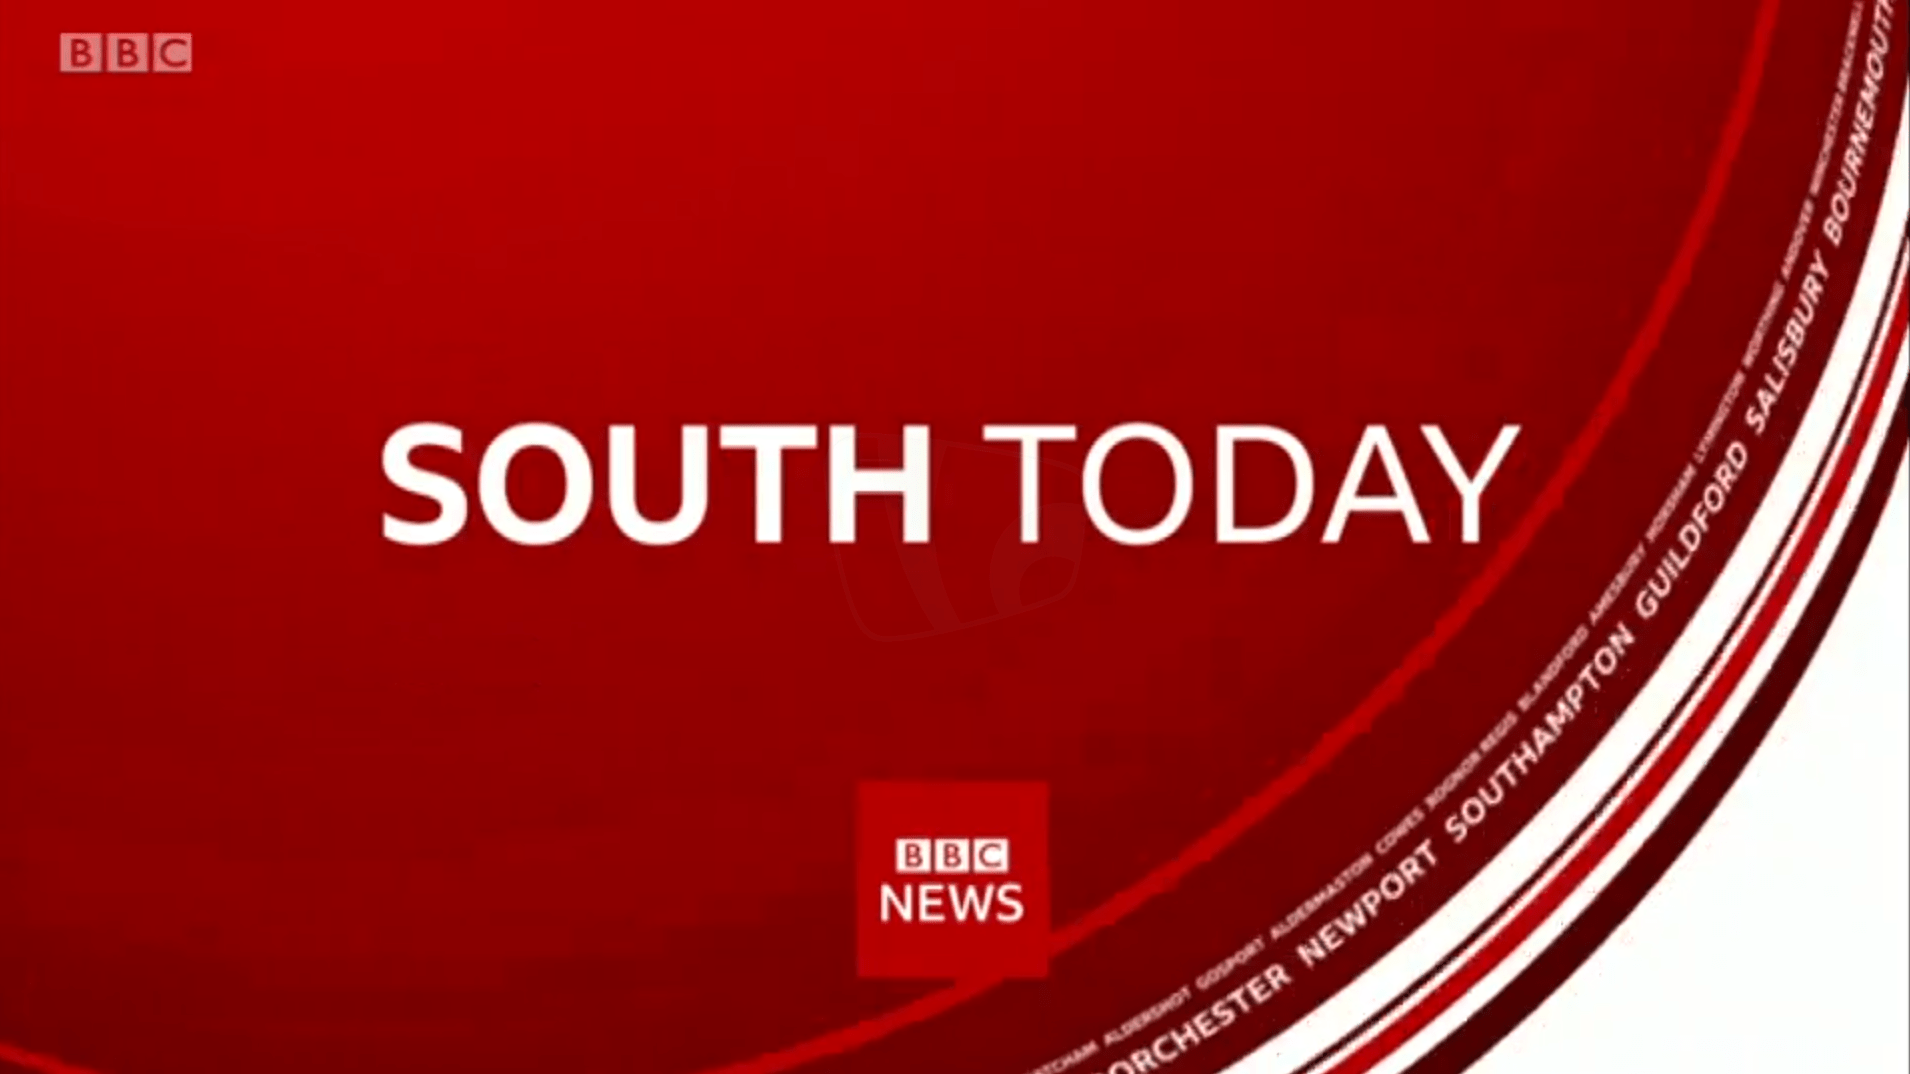 PICTURED: BBC South Today opening titles.